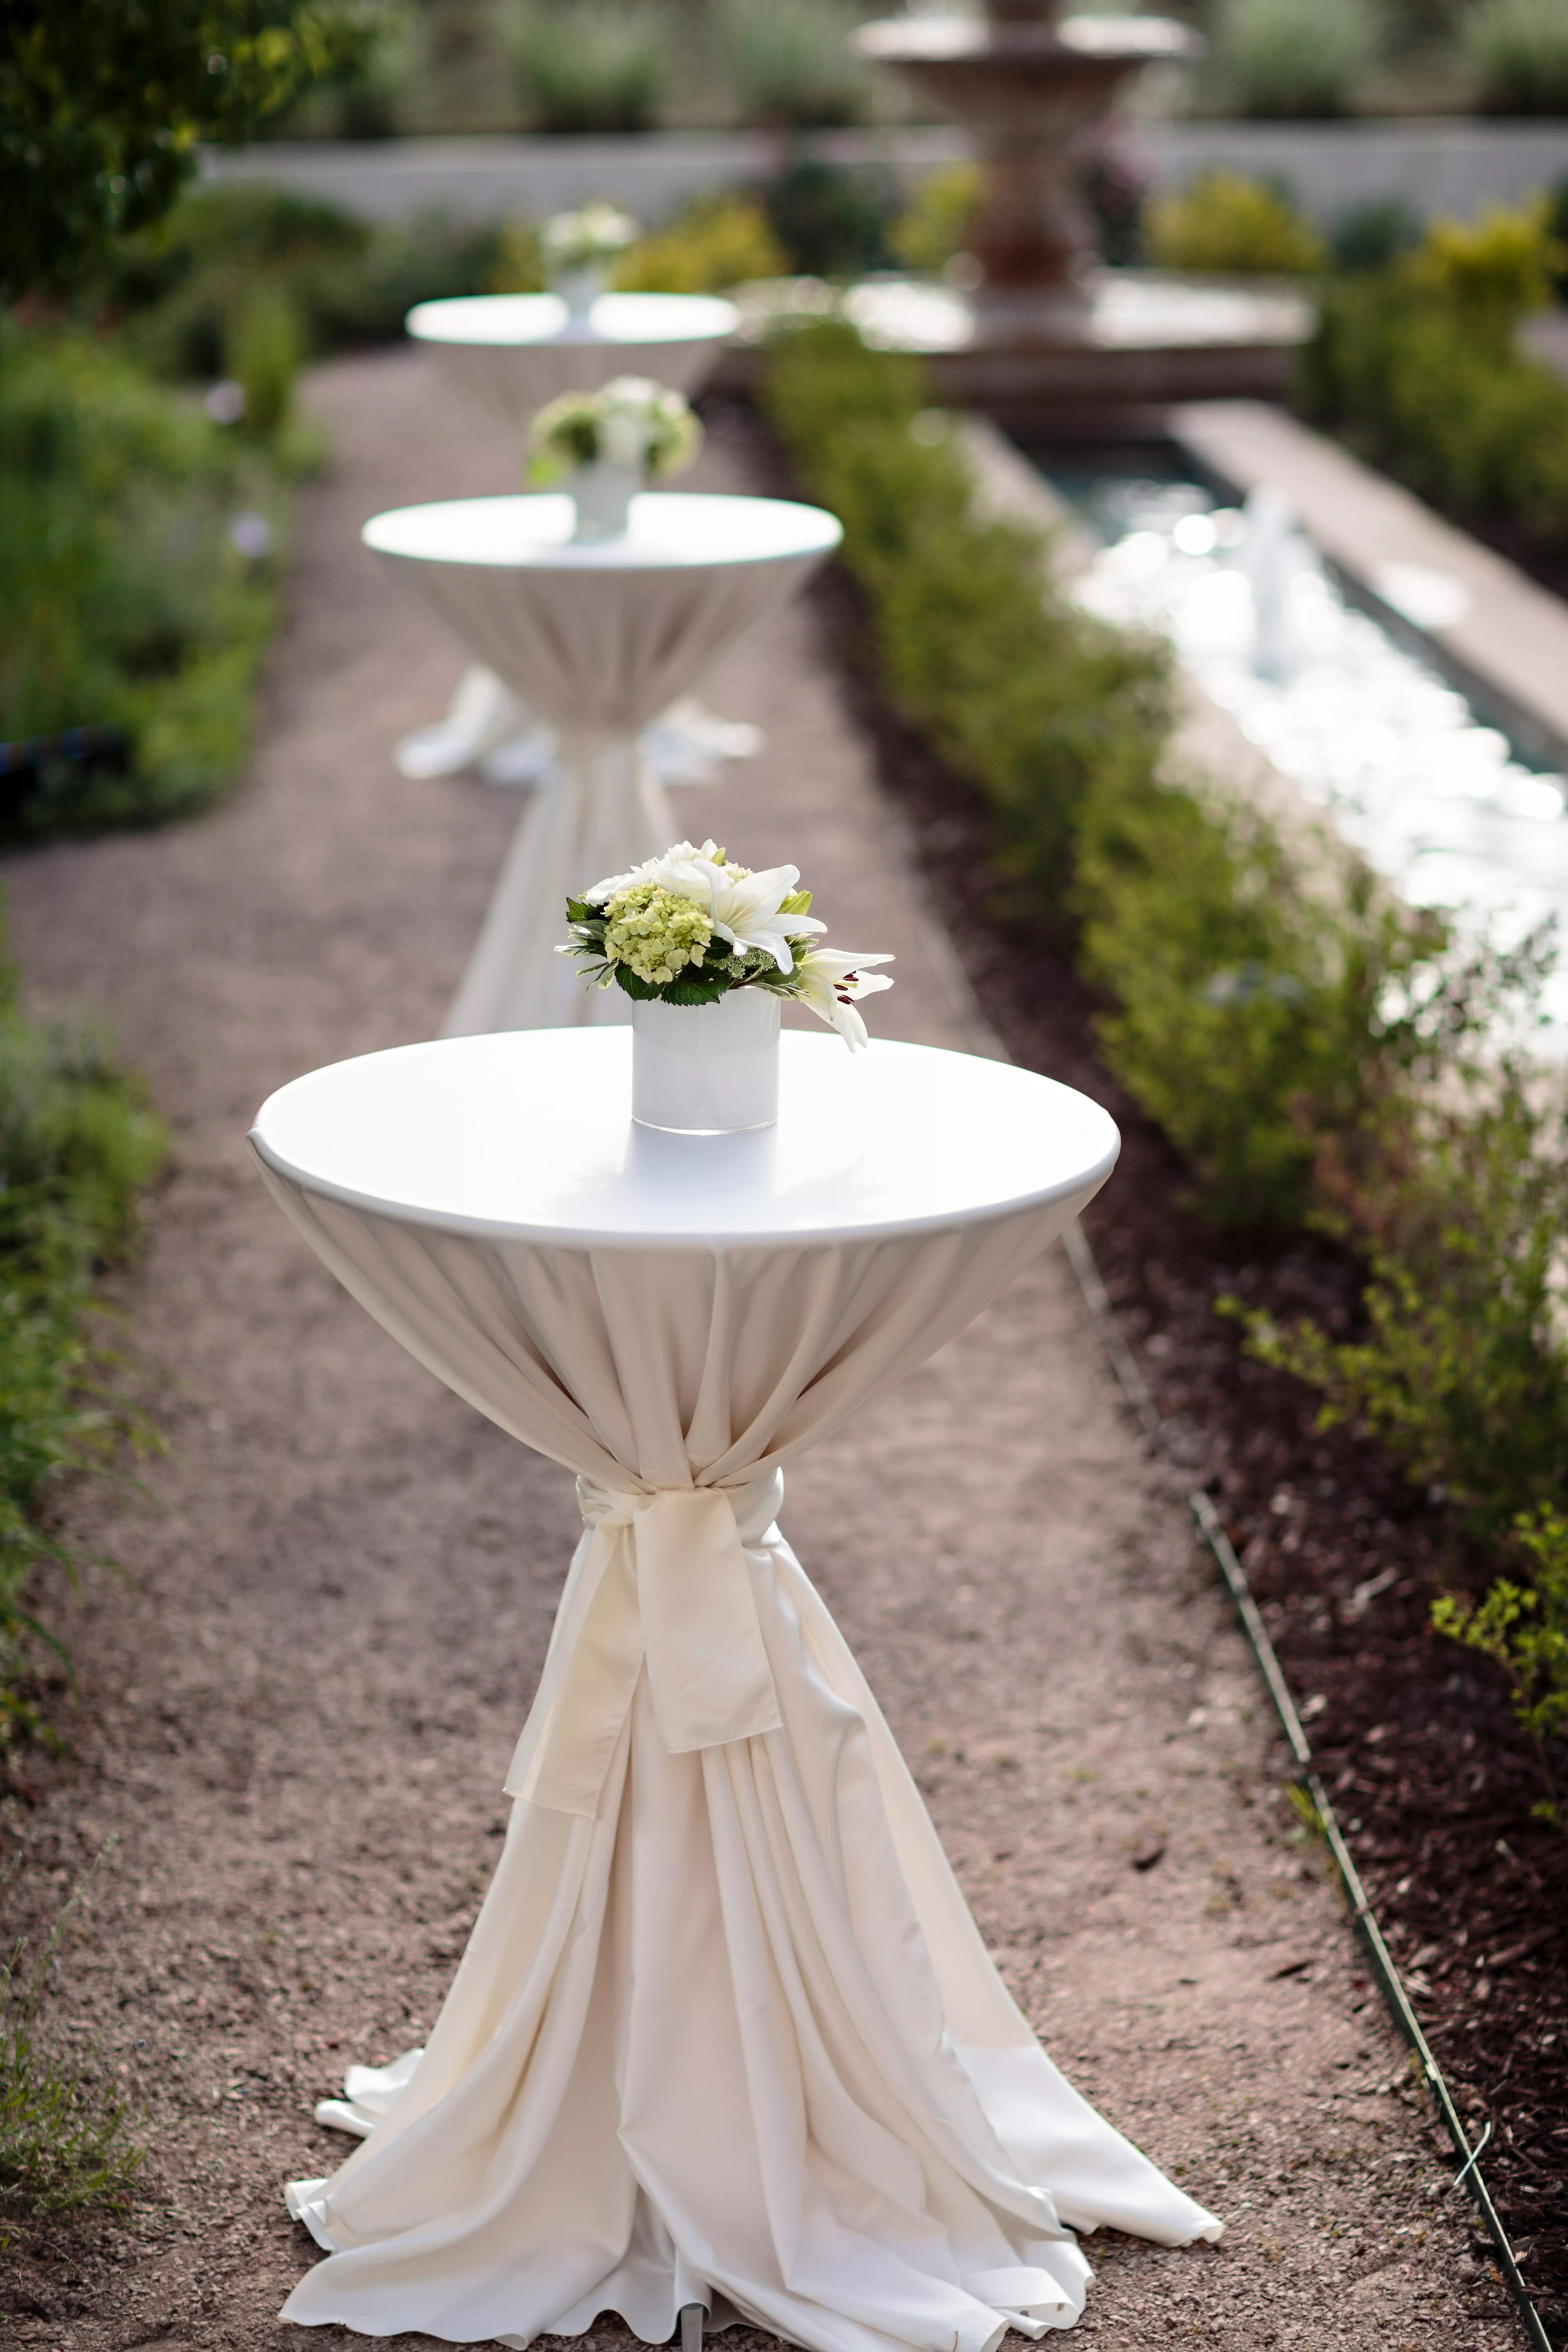 Lily and Hydrangea Cocktail Table Centerpieces